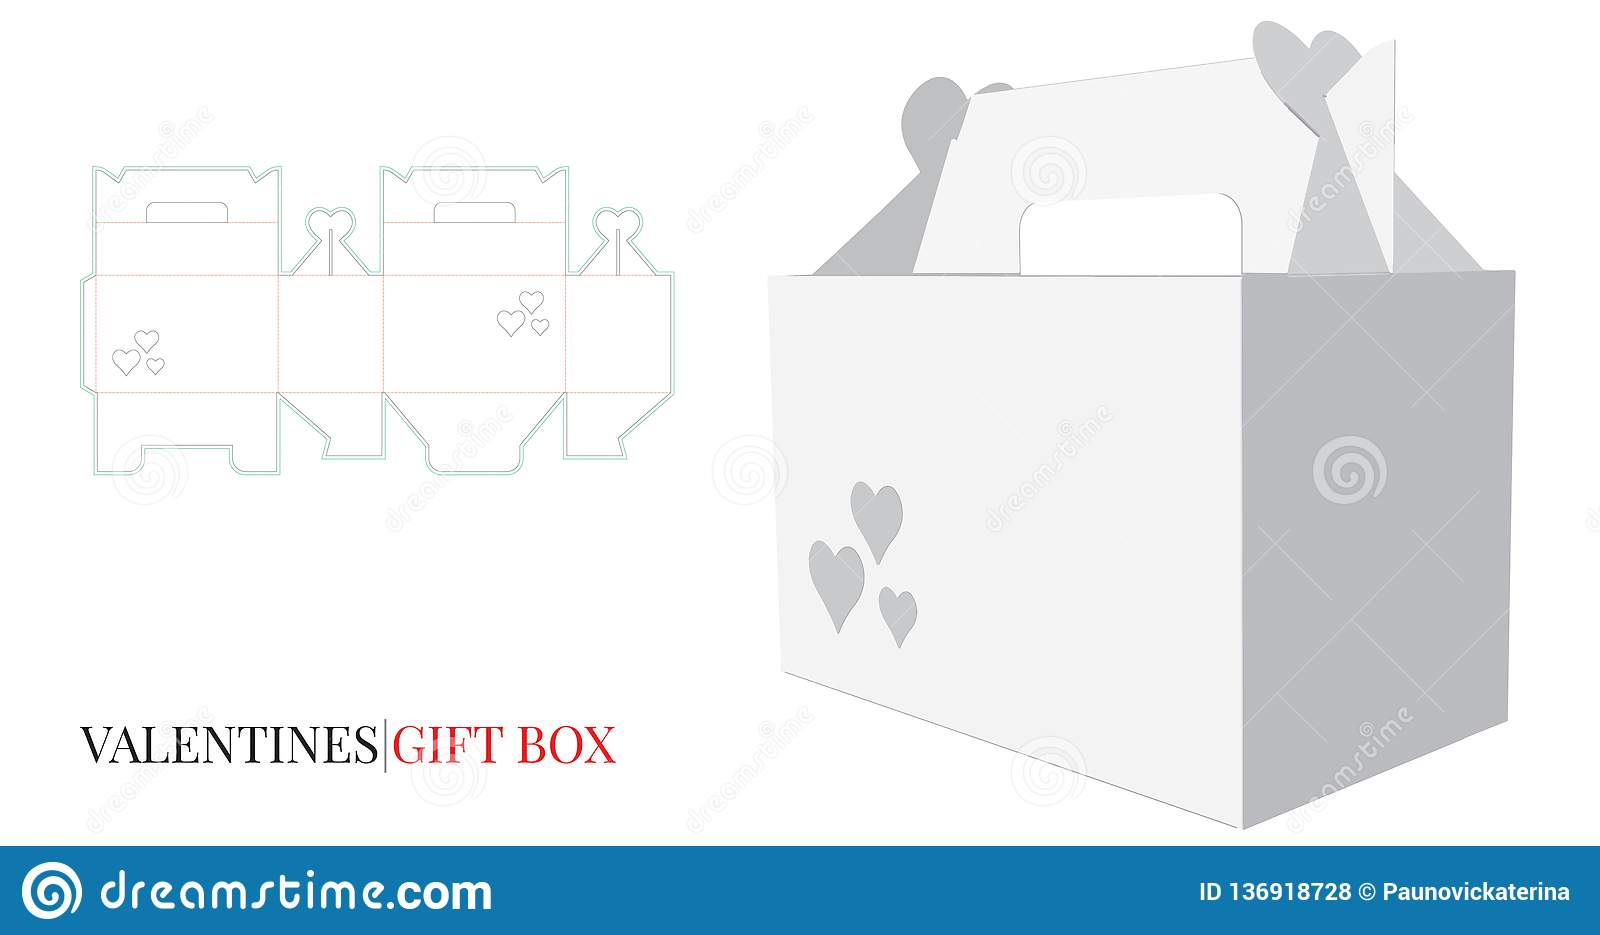 How to make a valentines day hearts gift or chocolates box craft.